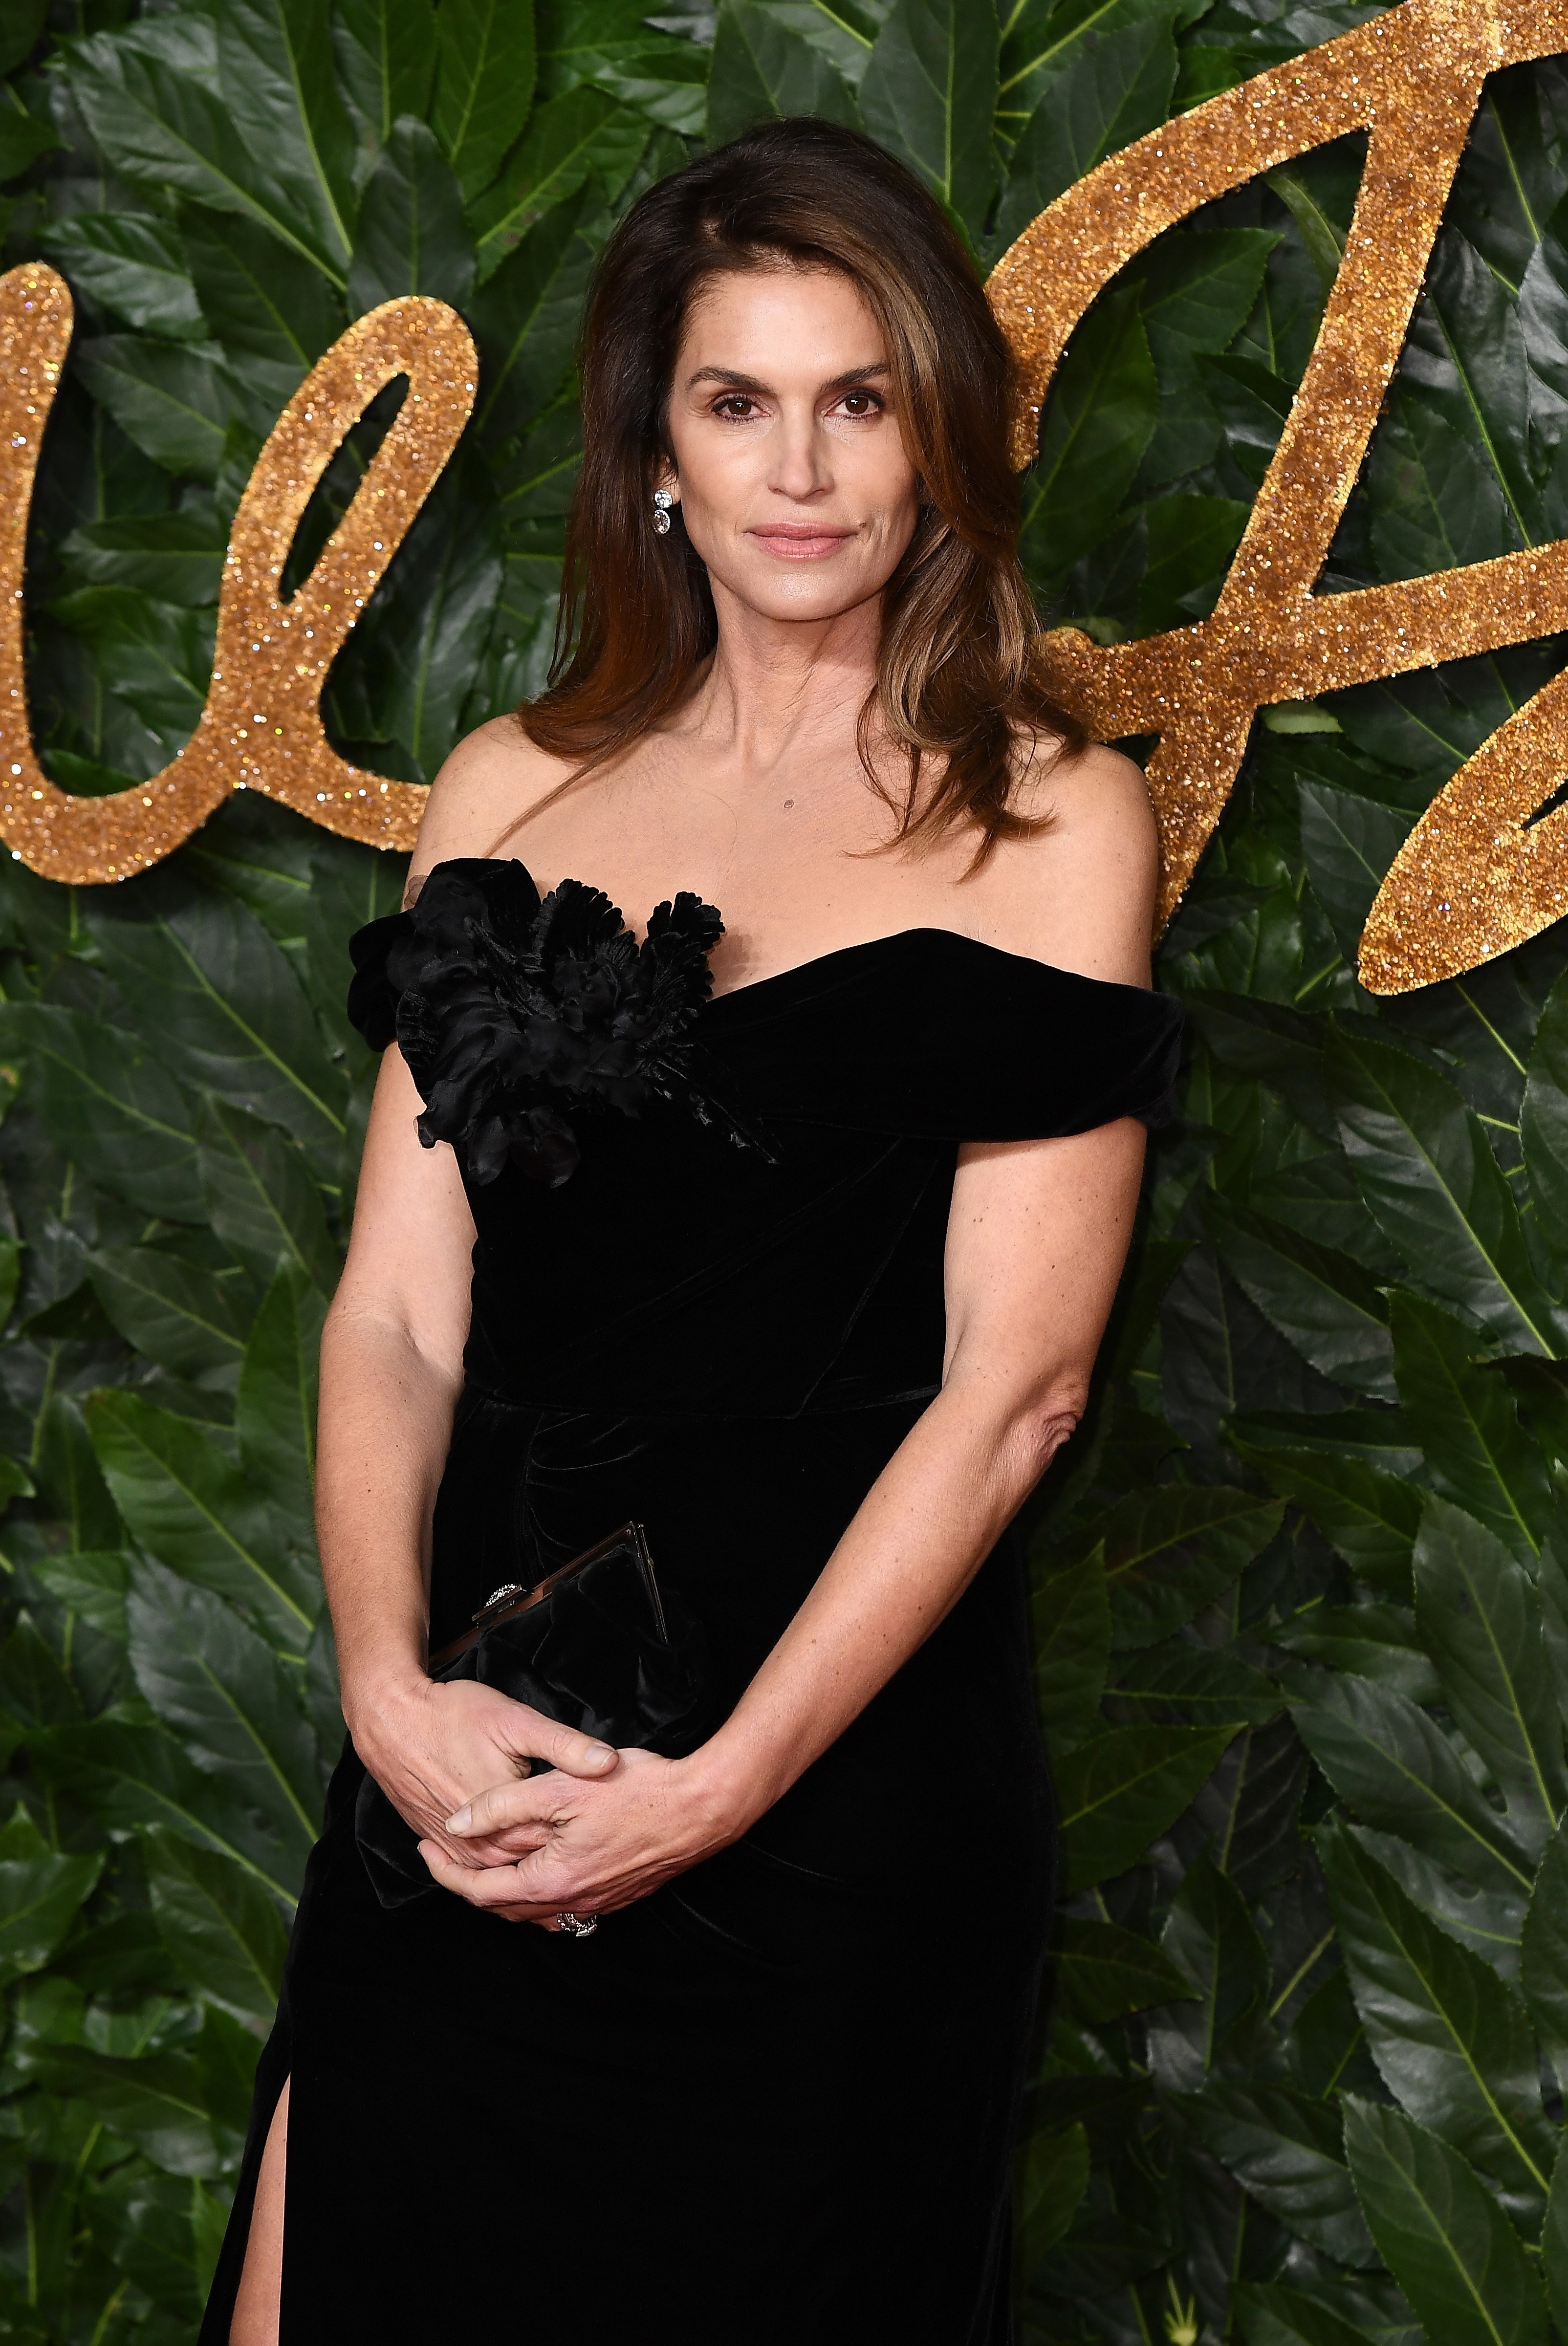 Cindy Crawford arrives attends The Fashion Awards 2018 at Royal Albert Hall on December 10, 2018. | Photo: Getty Images